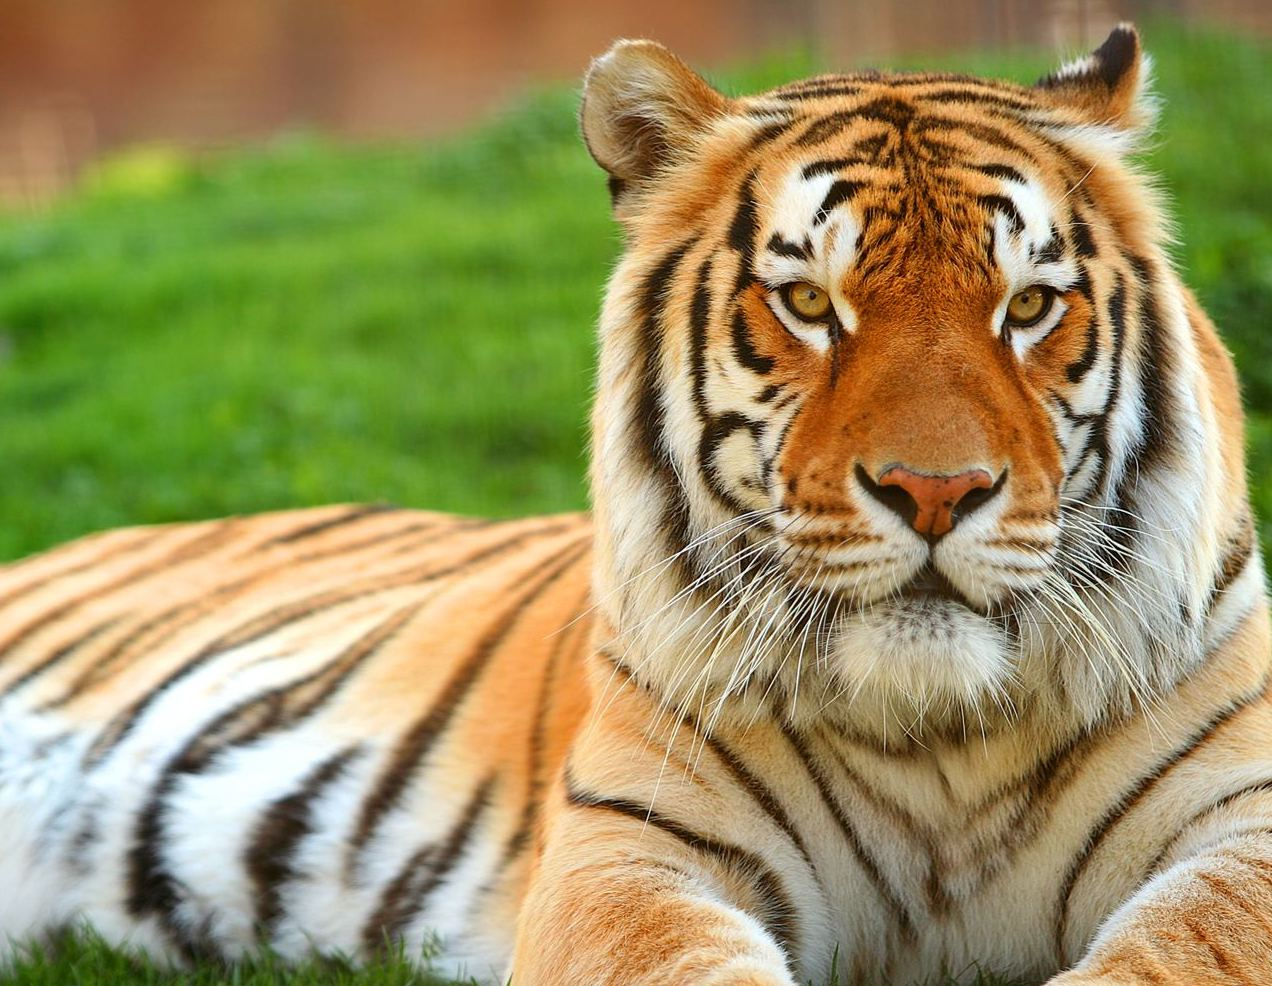 Tiger HD Wallpaper Download